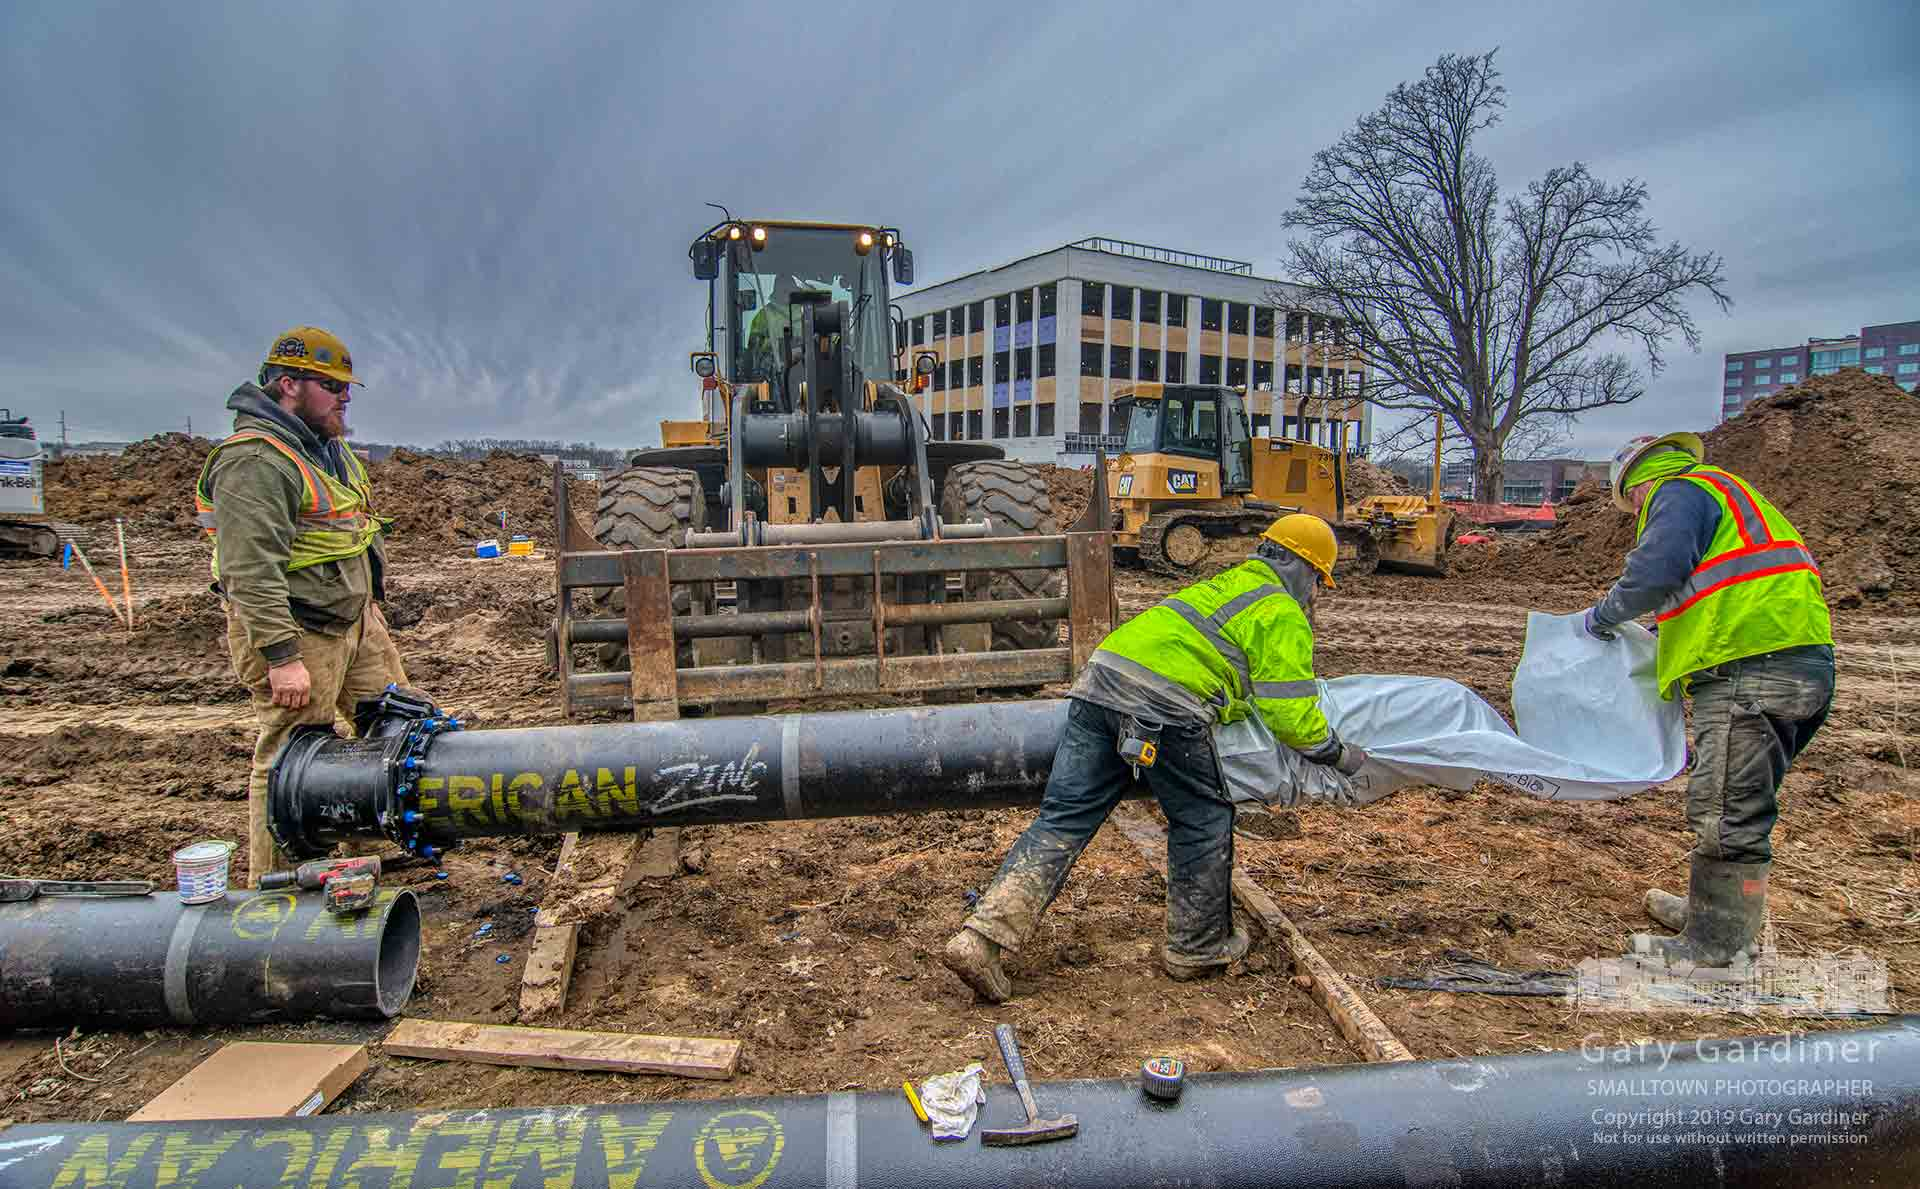 A work crew sleeves a 12-inch water pipe before installing it as part of new underground utility service for the DHL building being built in Westar. My Final Photo for Feb. 28, 2019.